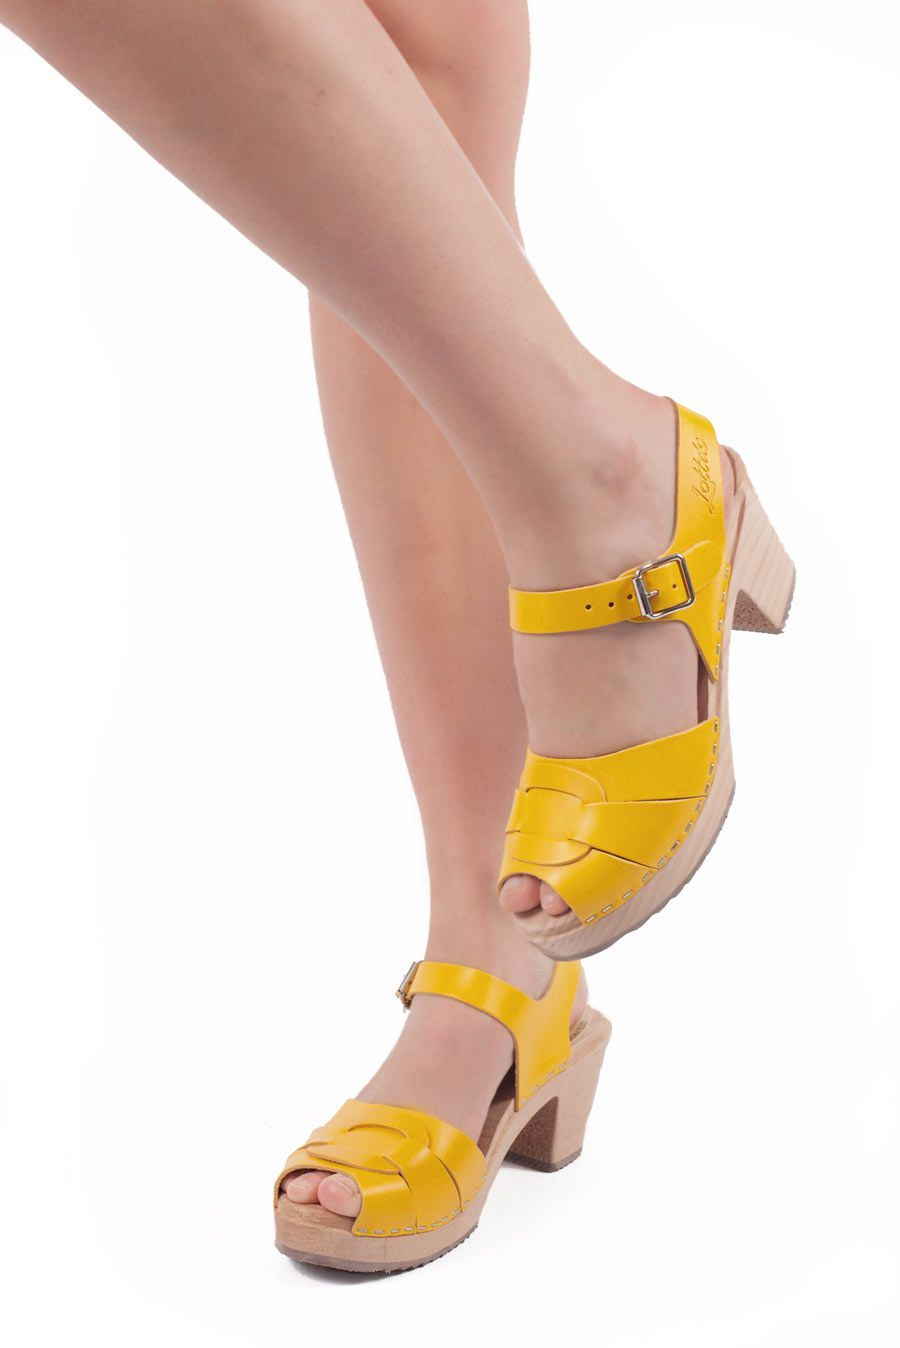 Lotta From Stockholm Peep Toe Summer Yellow